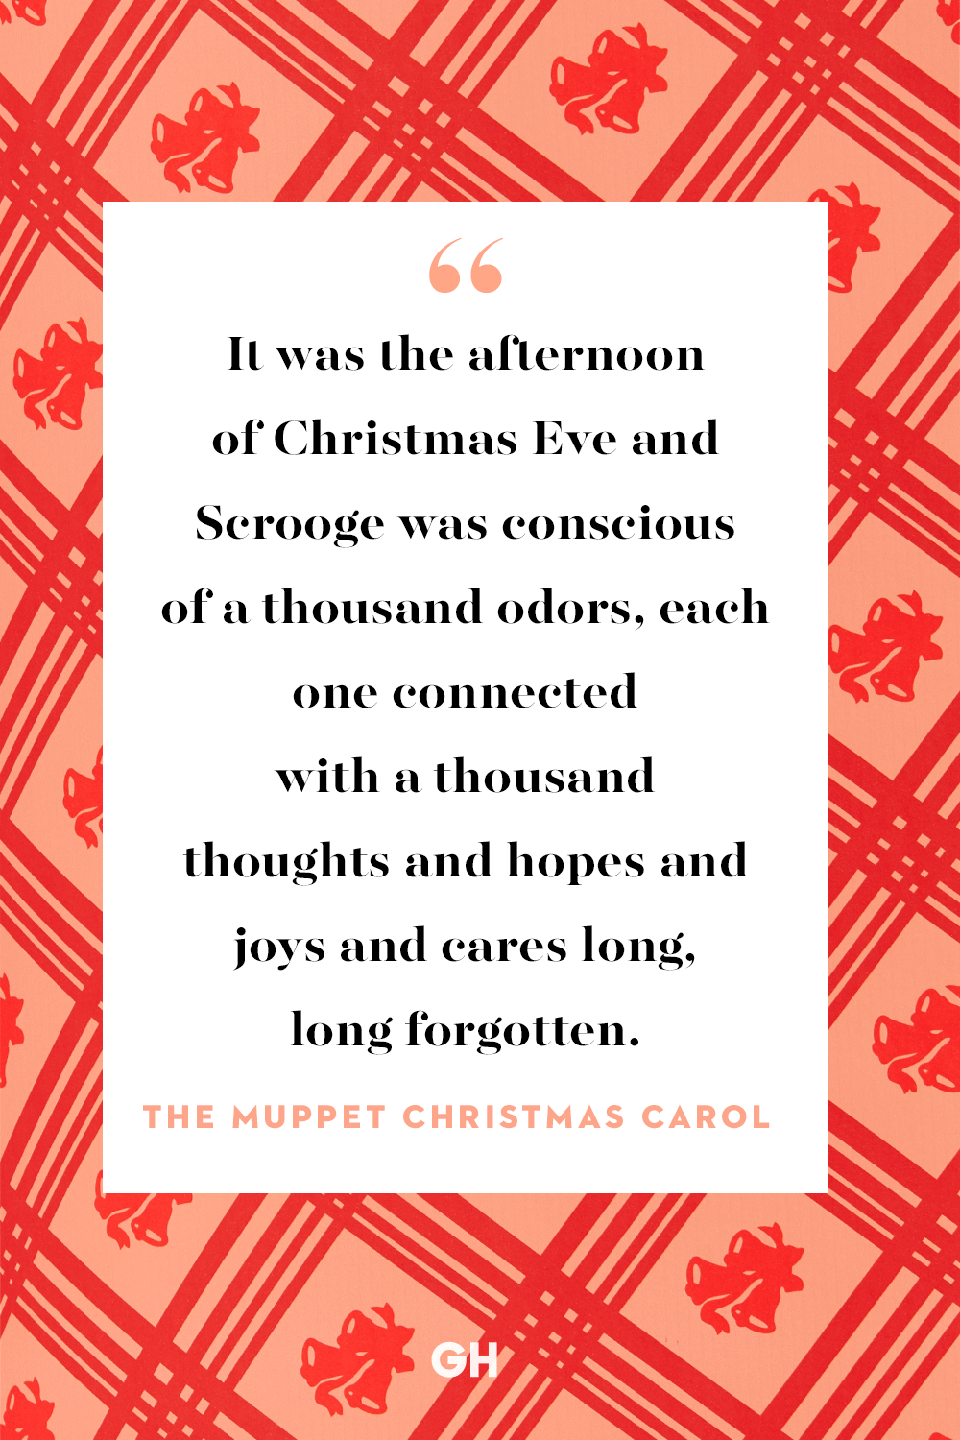 <p>It was the afternoon of Christmas Eve and Scrooge was conscious of a thousand odors, each one connected with a thousand thoughts and hopes and joys and cares long, long forgotten. </p>